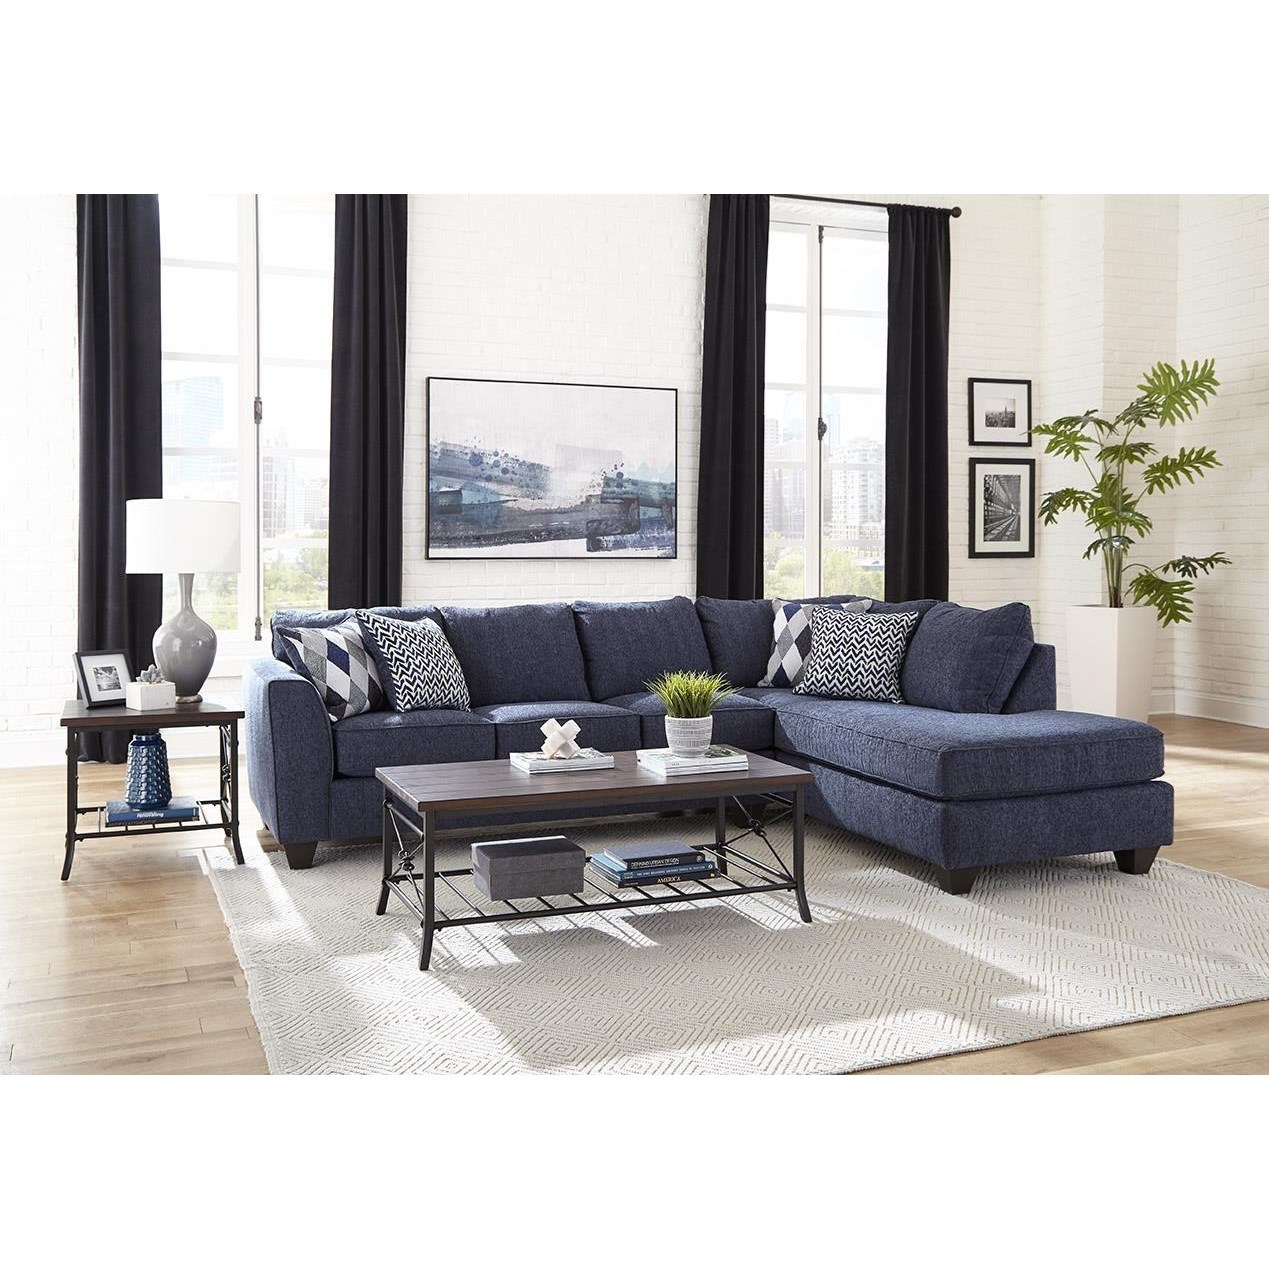 2256 Sectional Sleeper with Chaise by Albany at A1 Furniture & Mattress